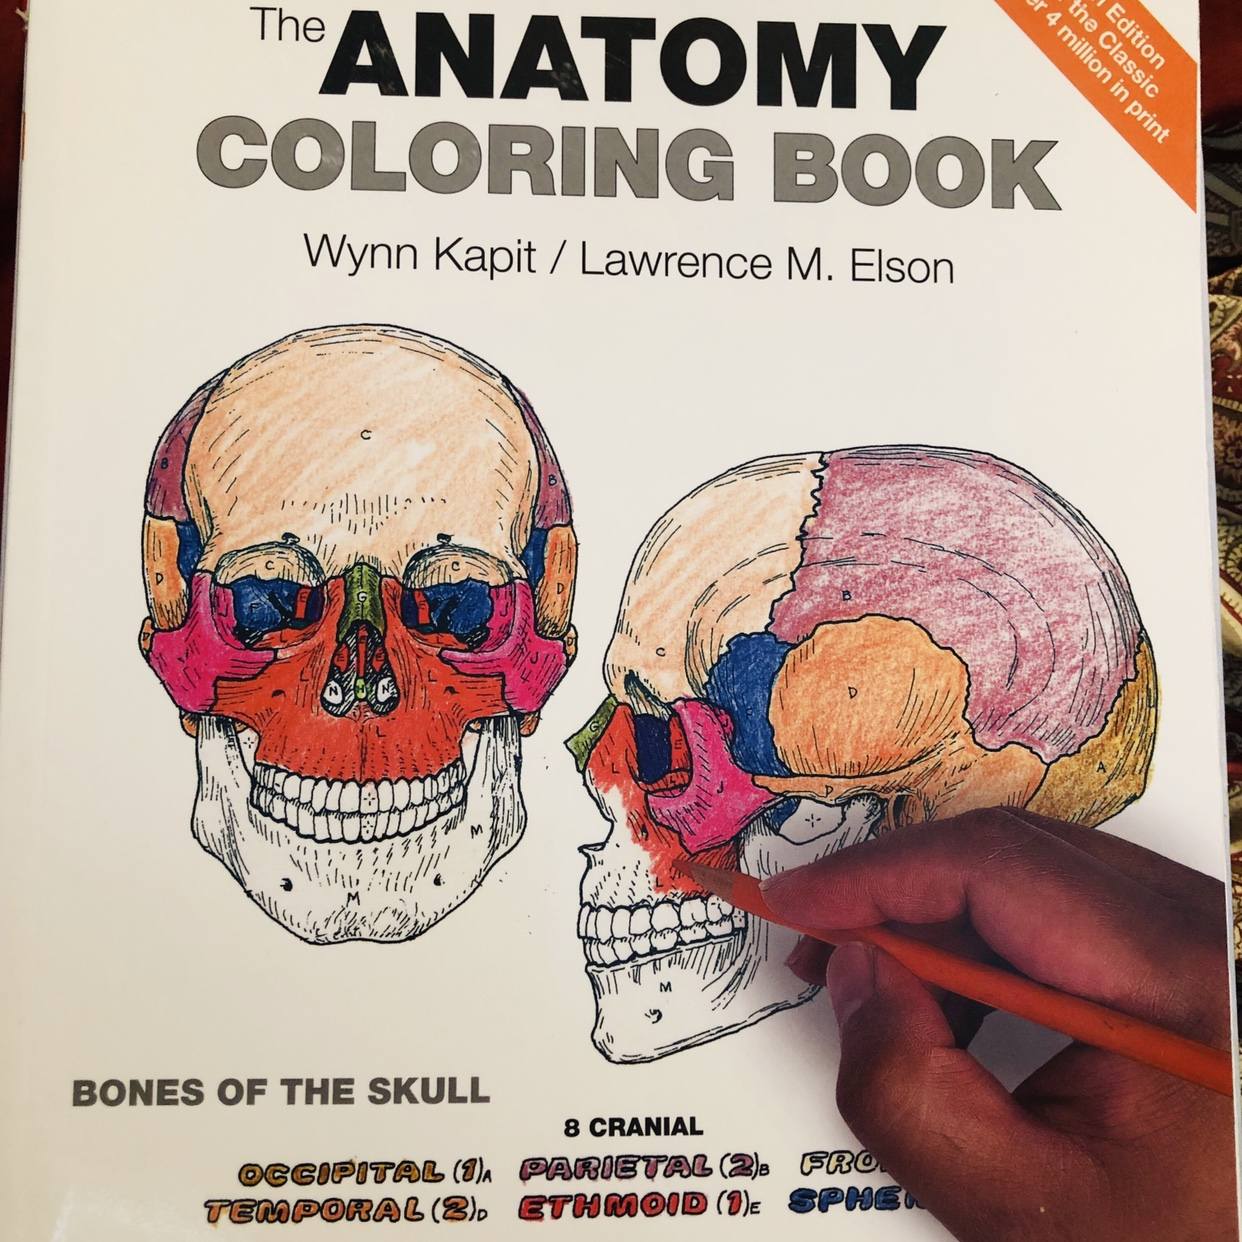 The Anatomy Coloring book 4th edition Wynn Kapit /... - Depop